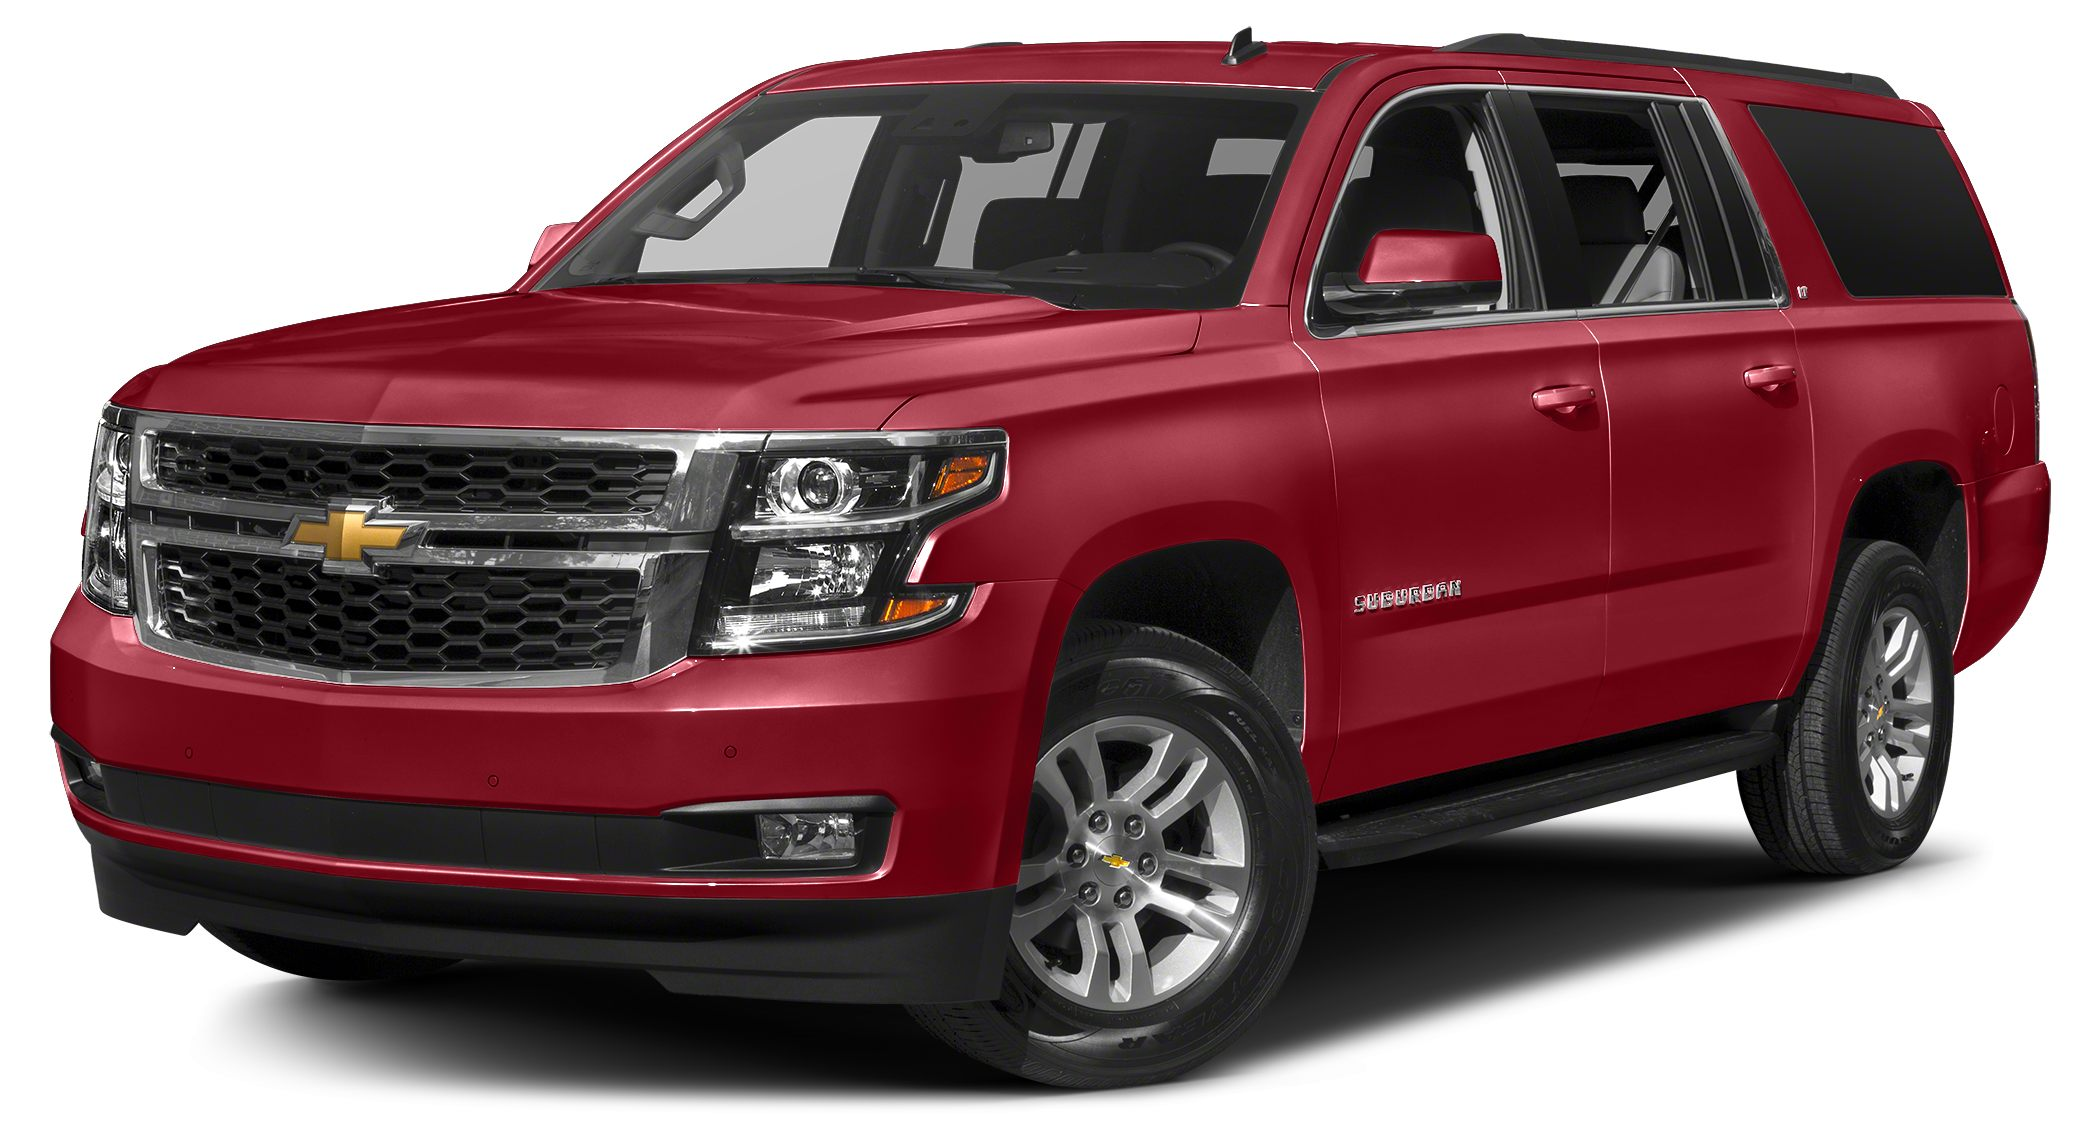 2015 Chevrolet Suburban 1500 LT OUR PRICESYoure probably wondering why our prices are so much lo